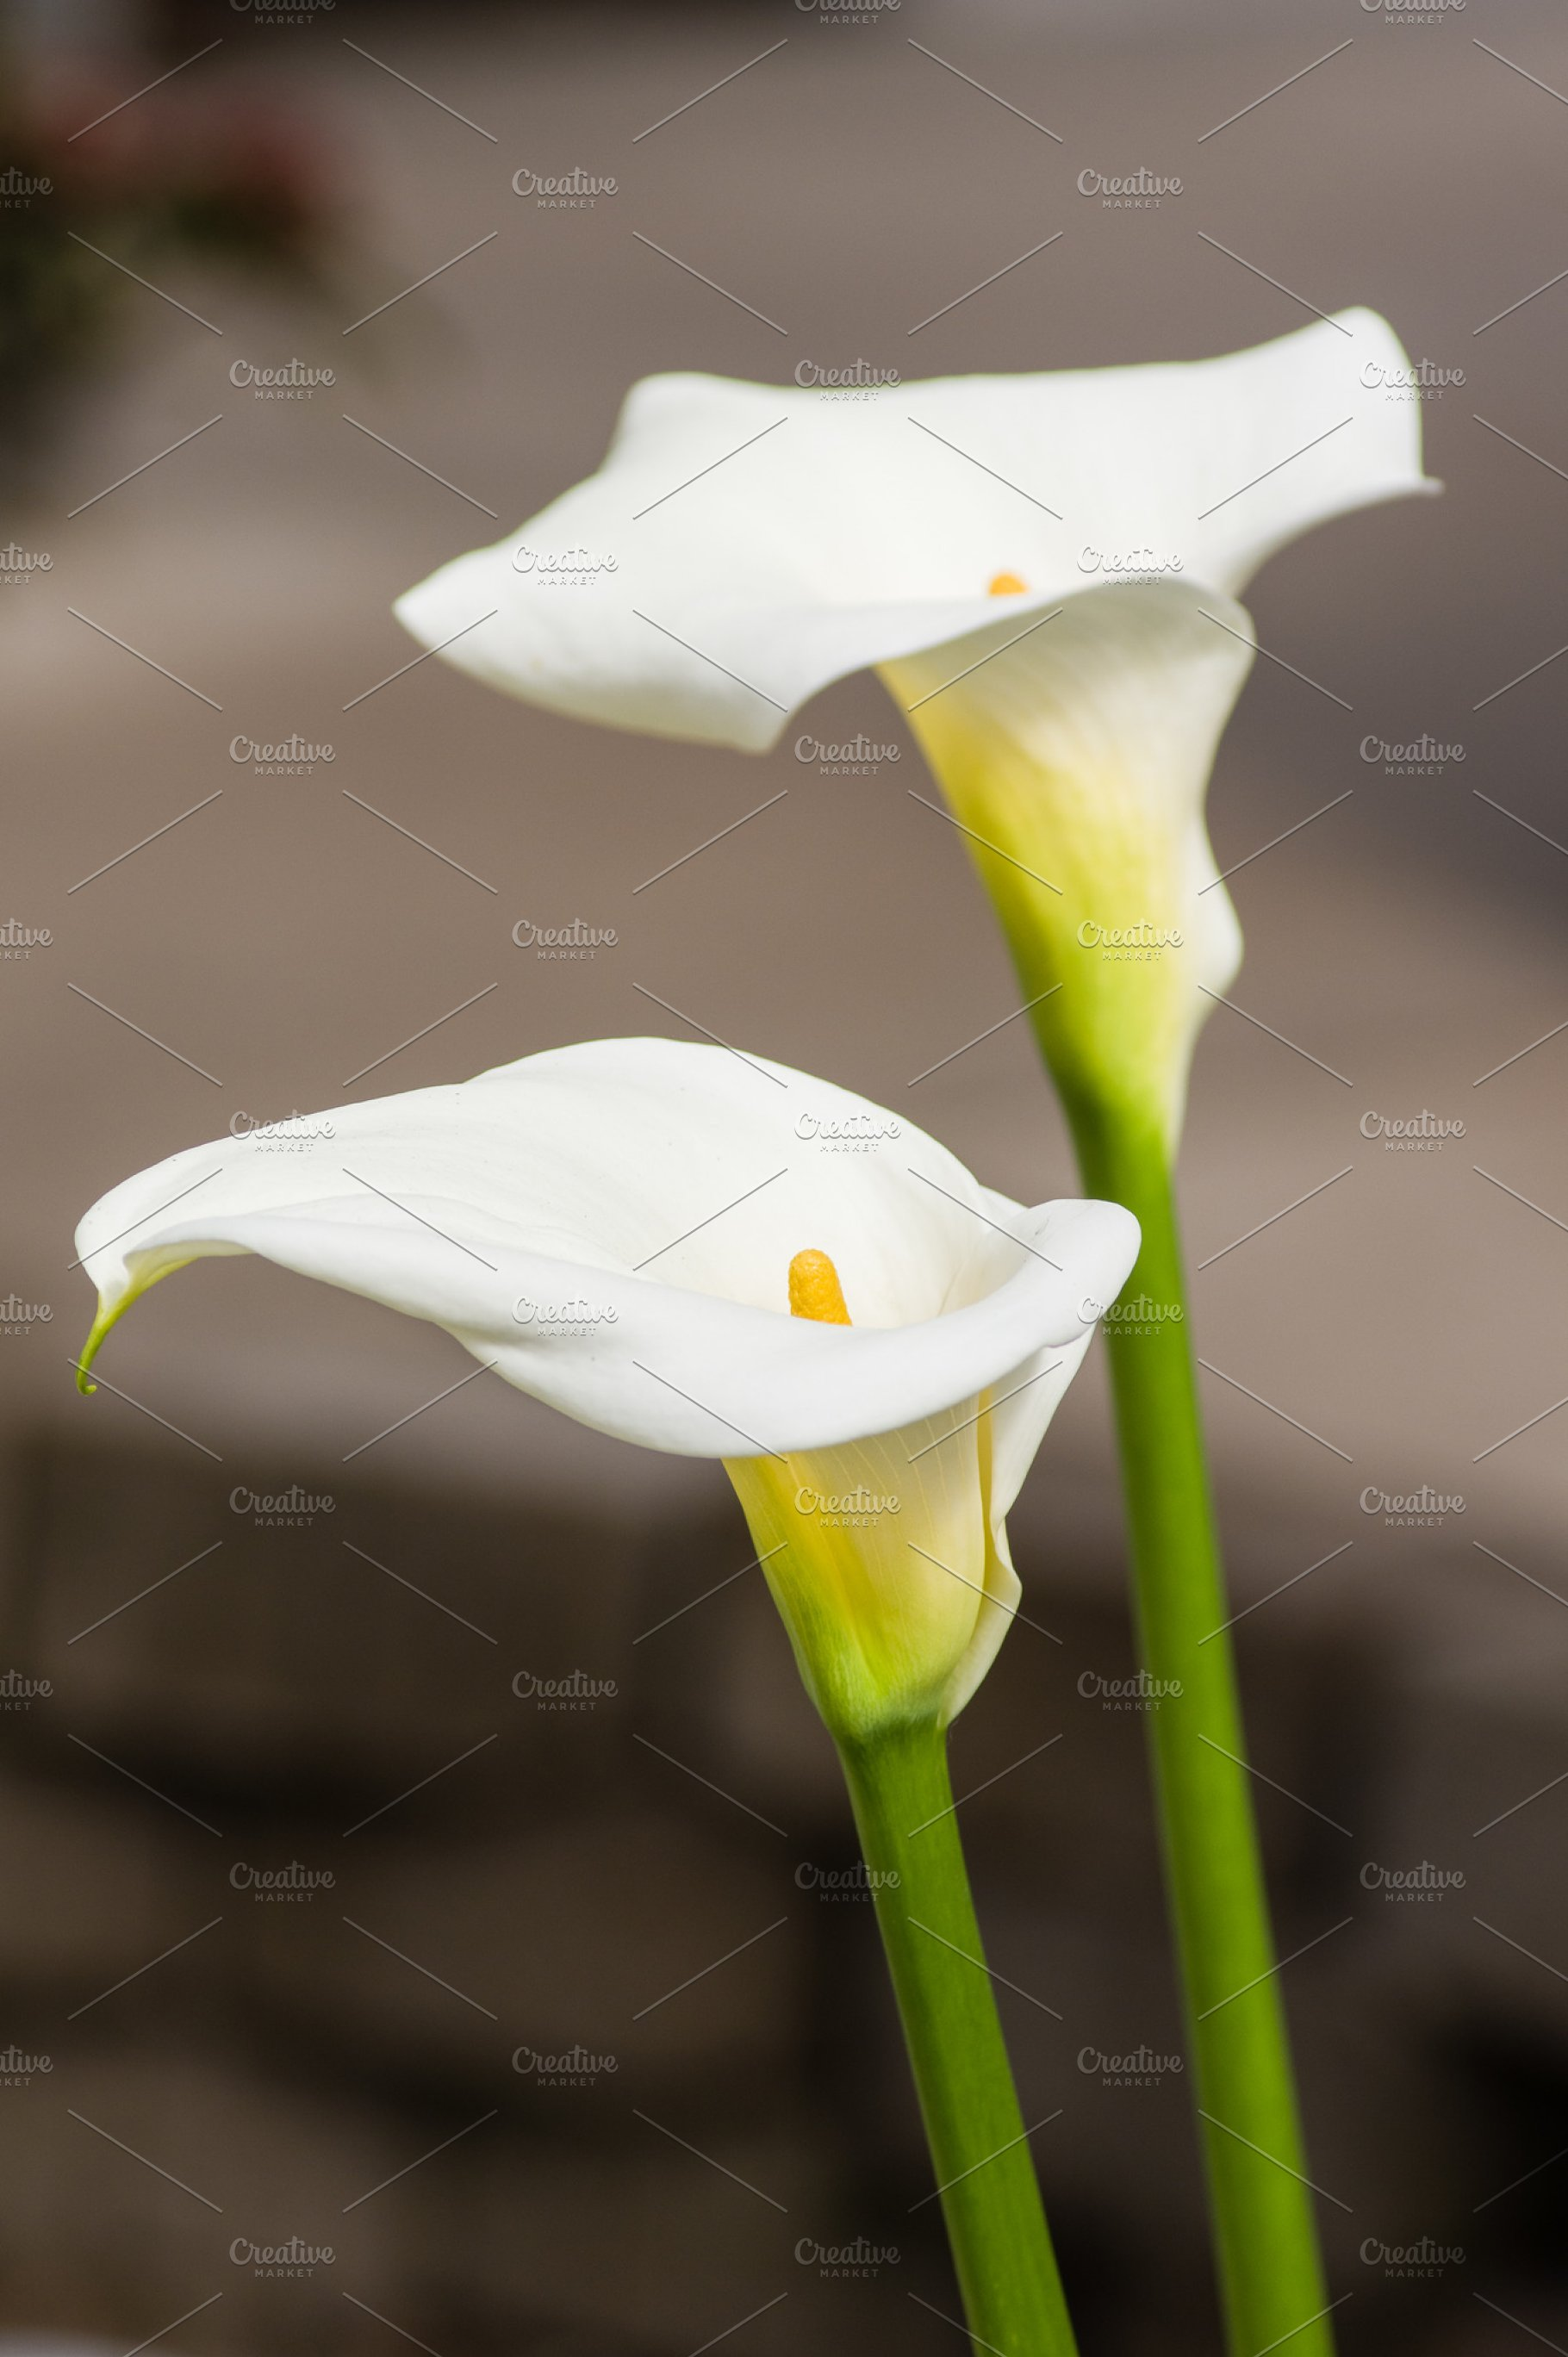 White Calla Lily Flowers In Bloom High Quality Nature Stock